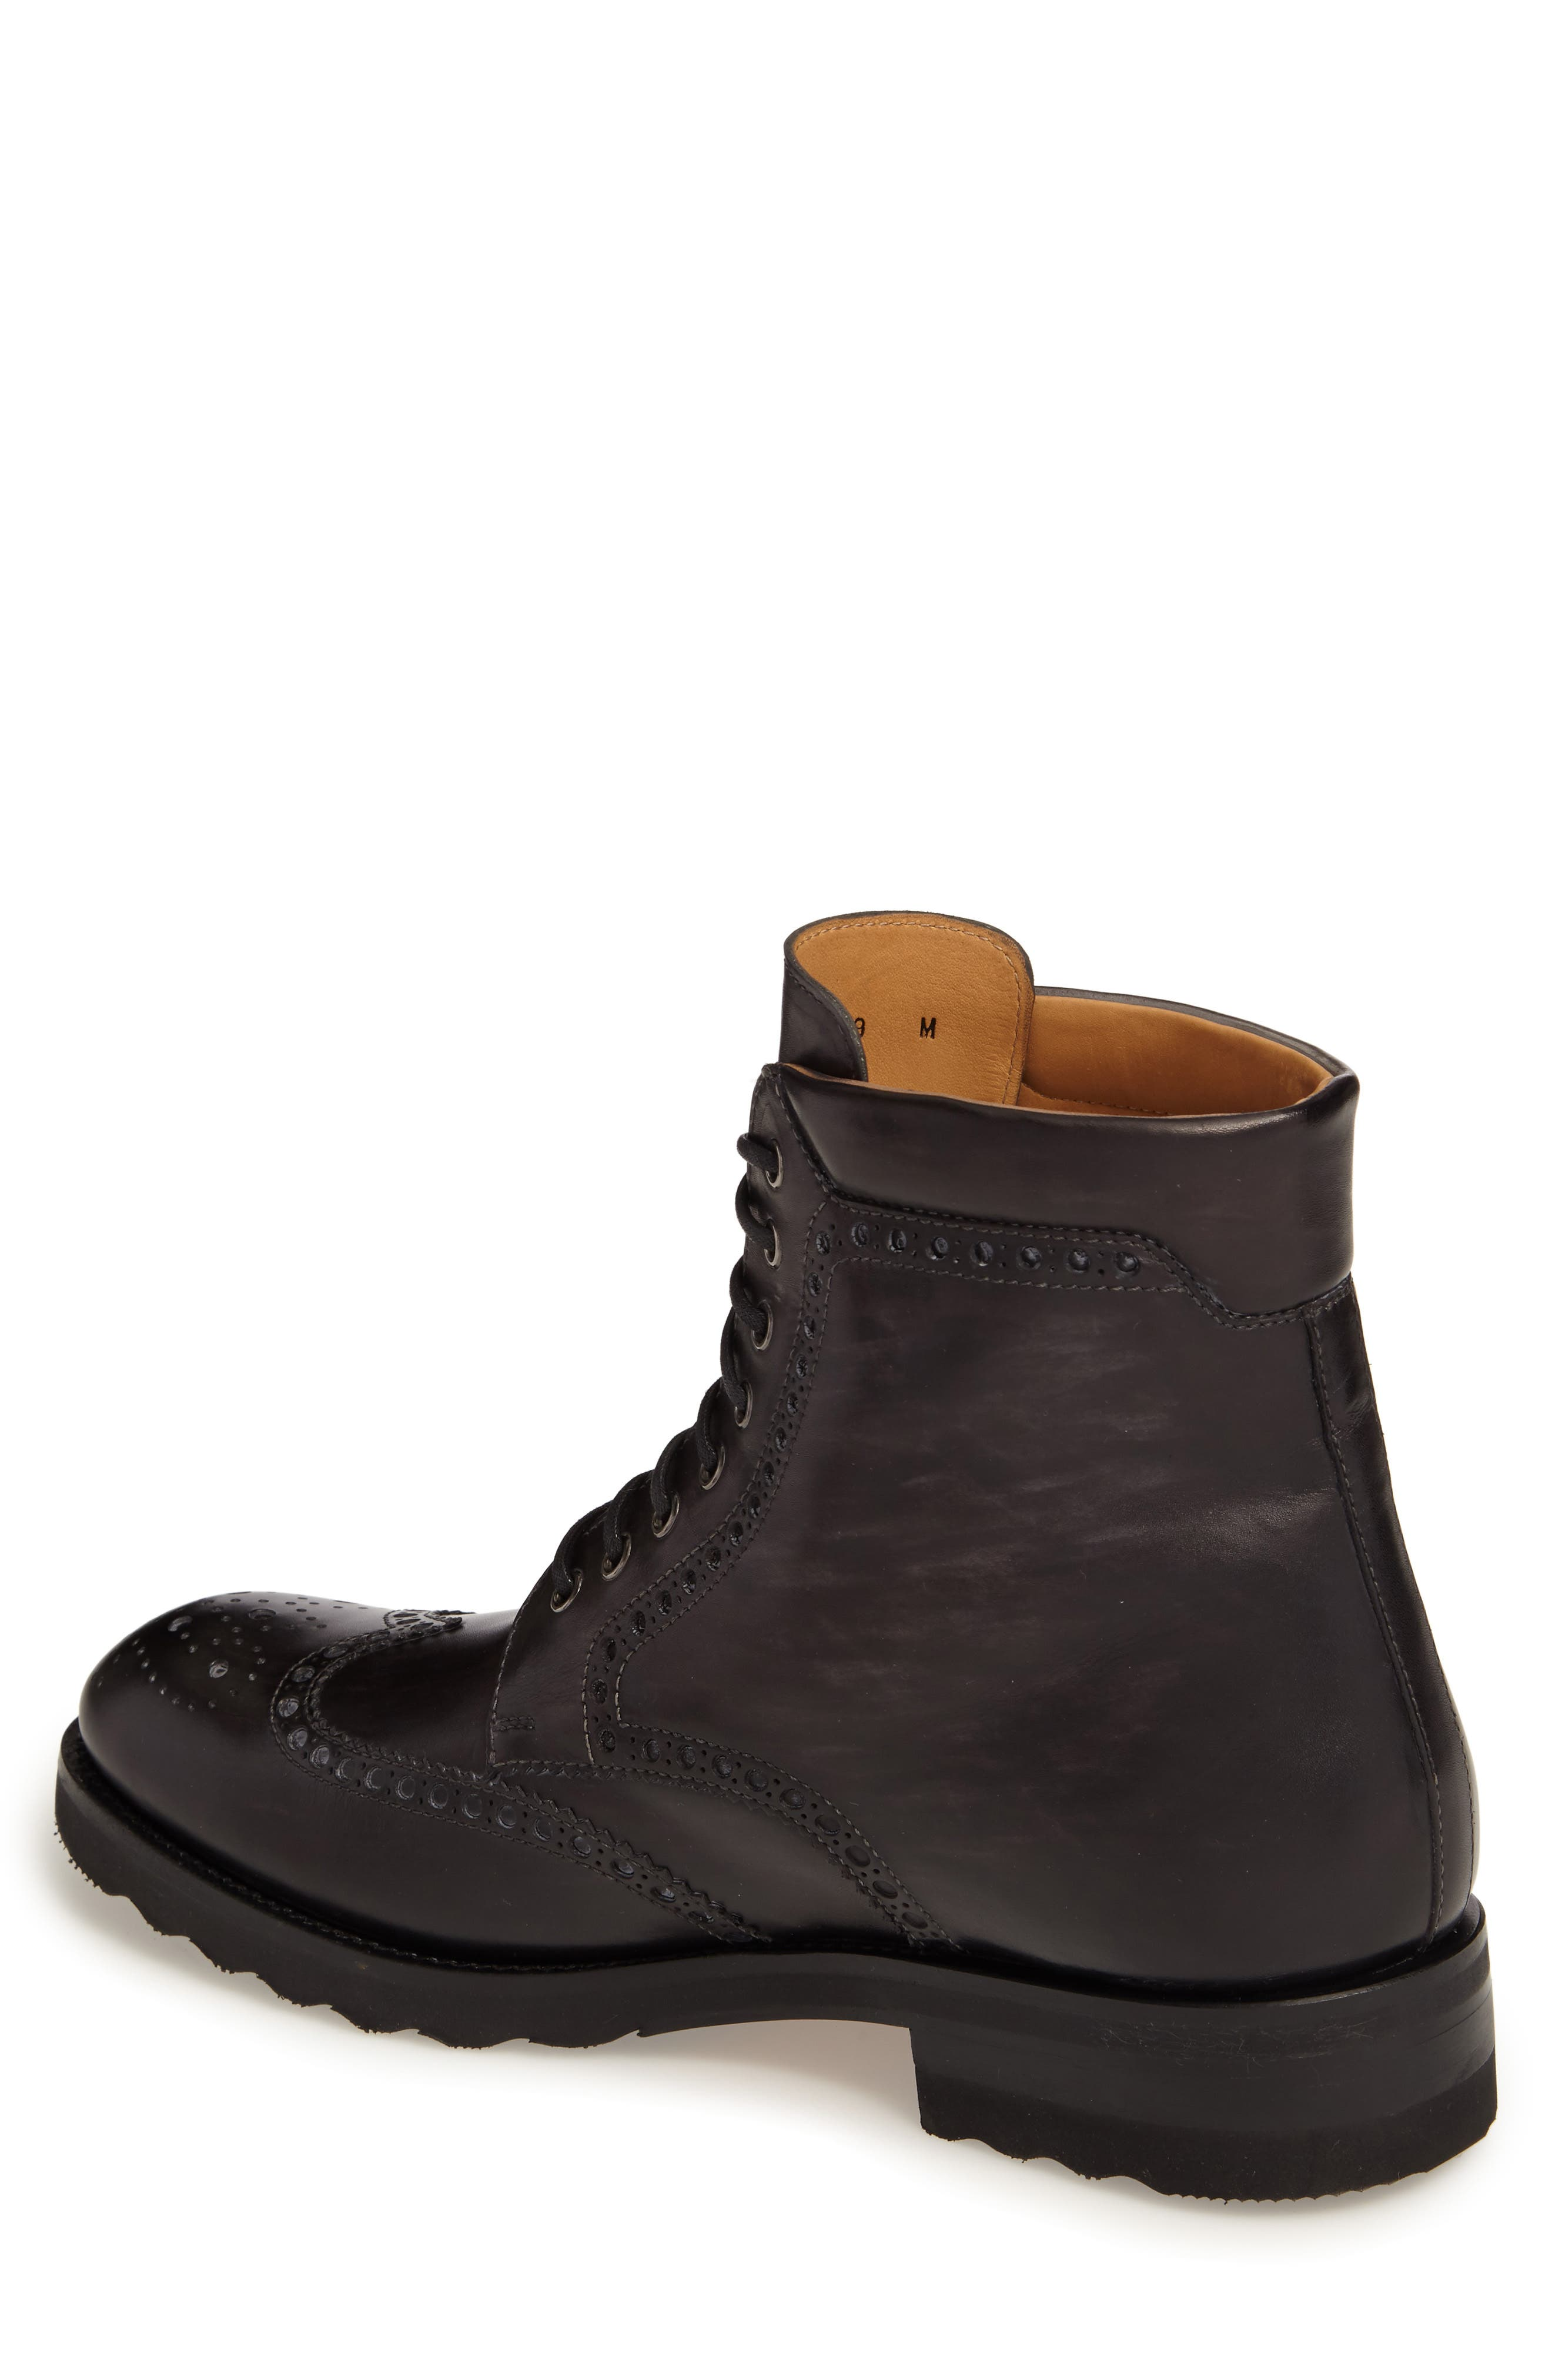 Fairfax Wingtip Boot,                             Alternate thumbnail 2, color,                             020